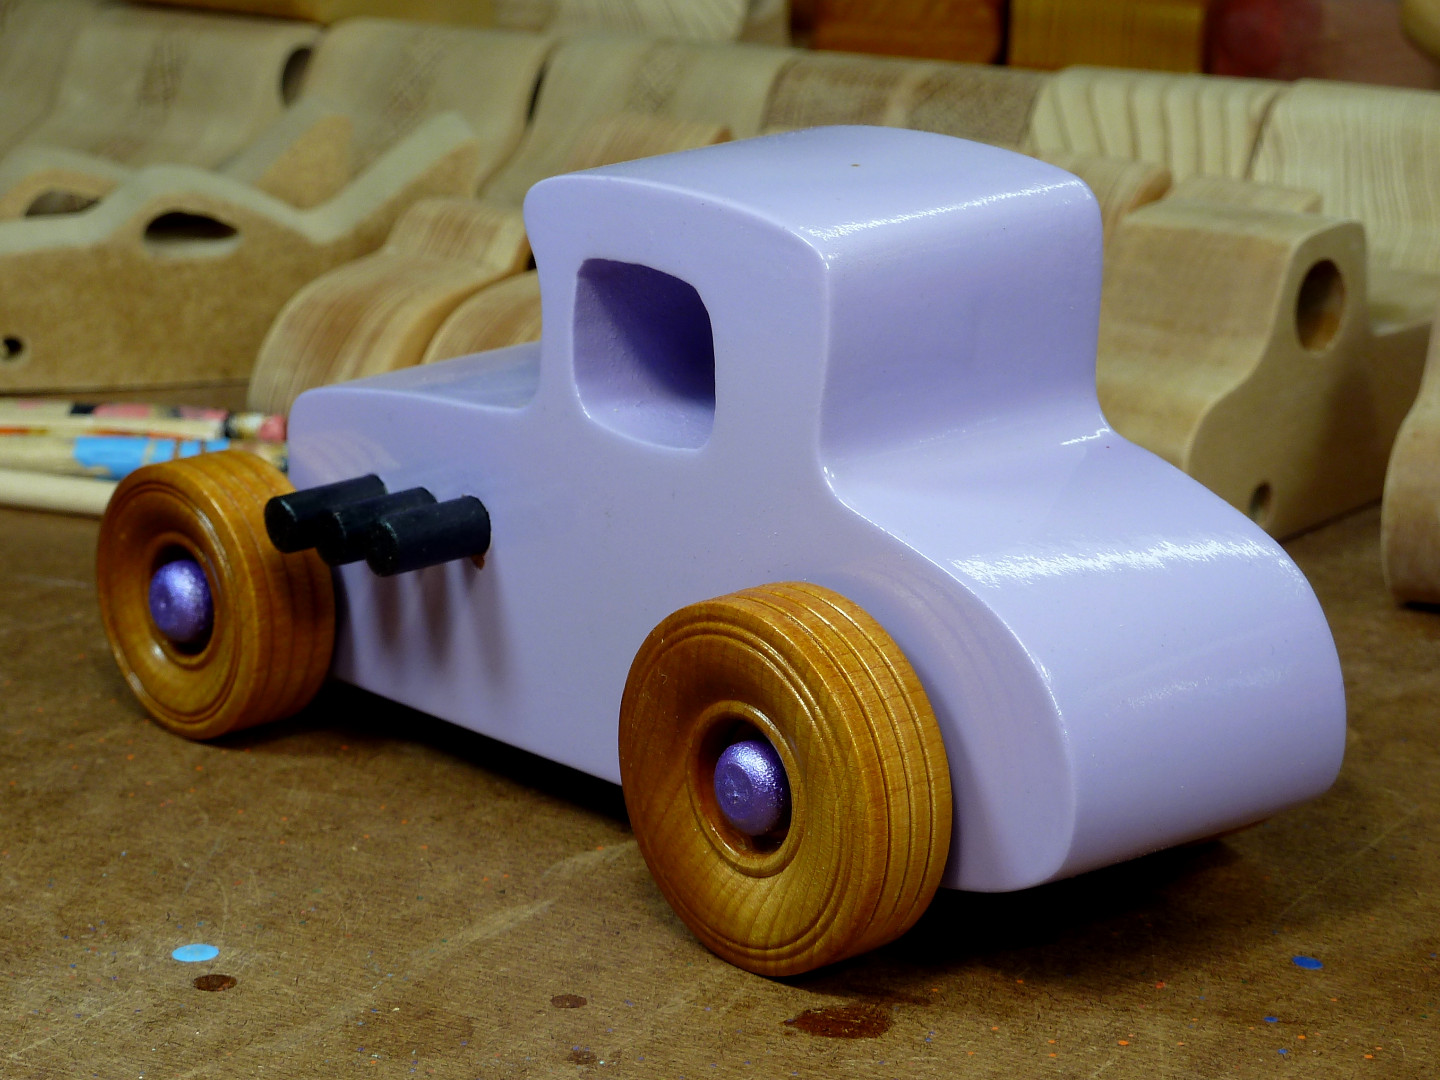 20170522-190250 Wooden Toy Car - Hot Rod Freaky Ford - 27 T Coupe - MDF - Lavender - Amber Shellac - Metallic Purple 06.jpg